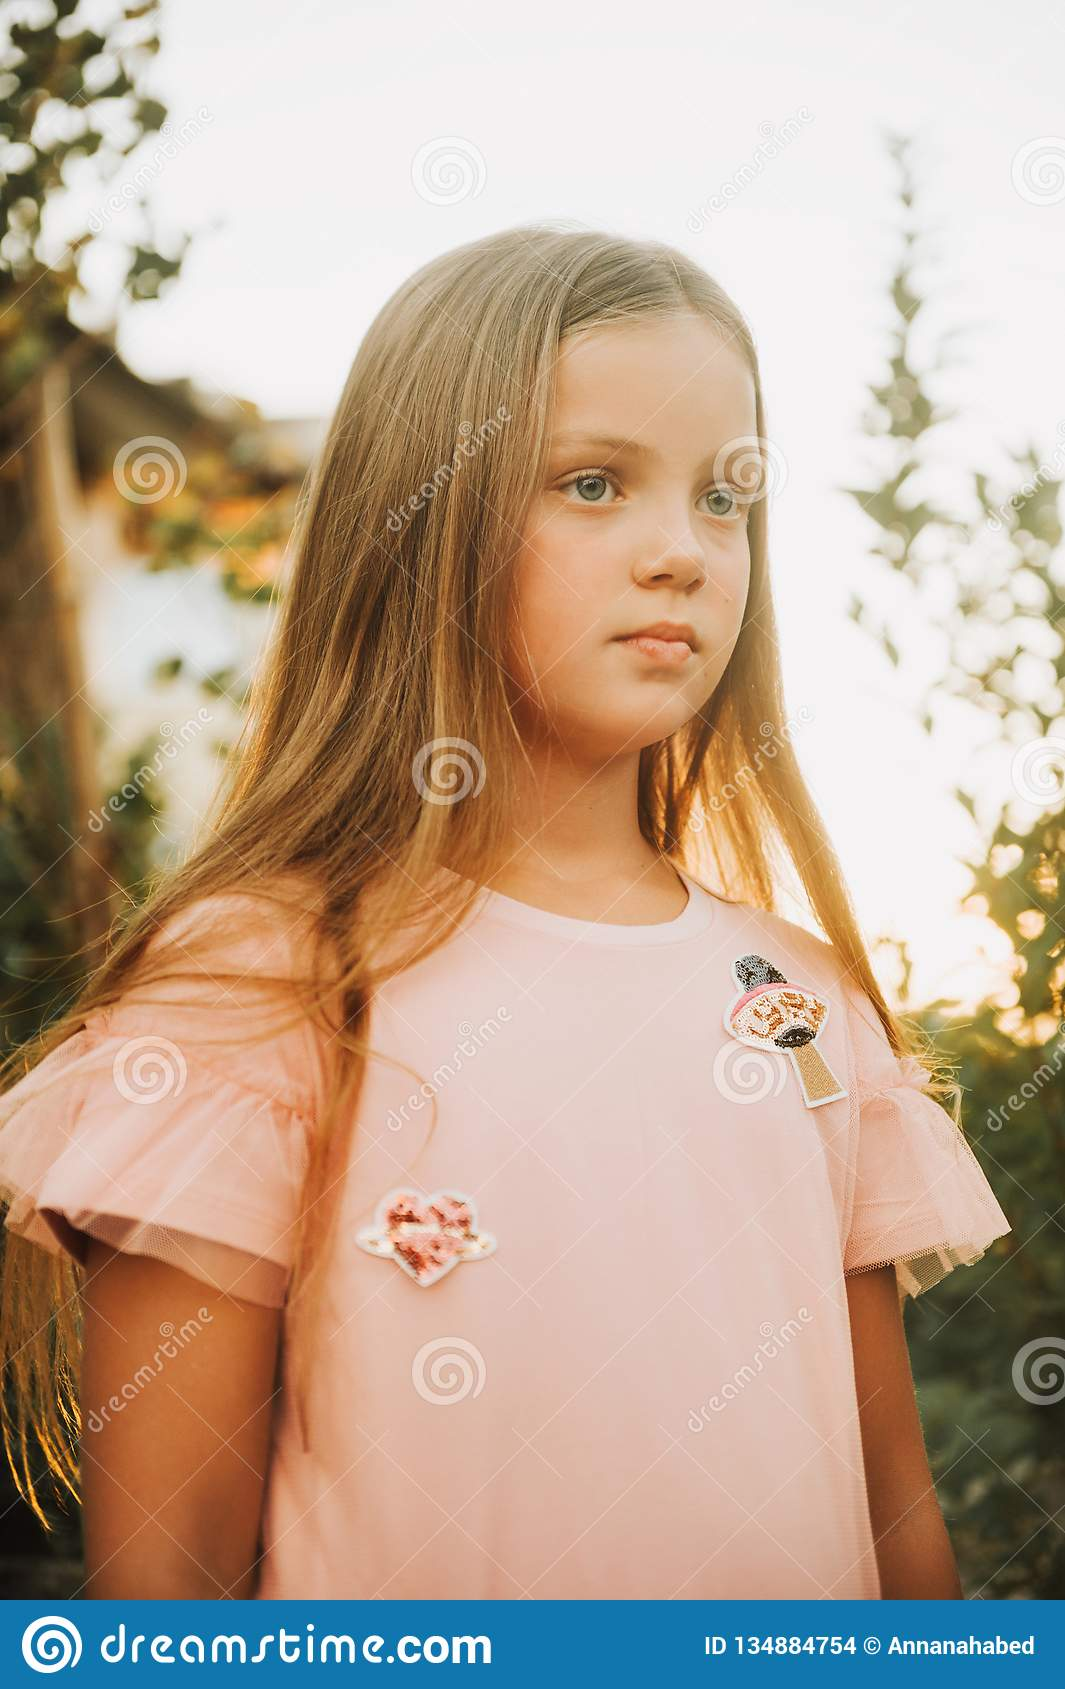 8d5401a4e32bf Outdoor portrait of beautiful little girl with long blonde hair wearing  pink dress, posing in sunset light. More similar stock images